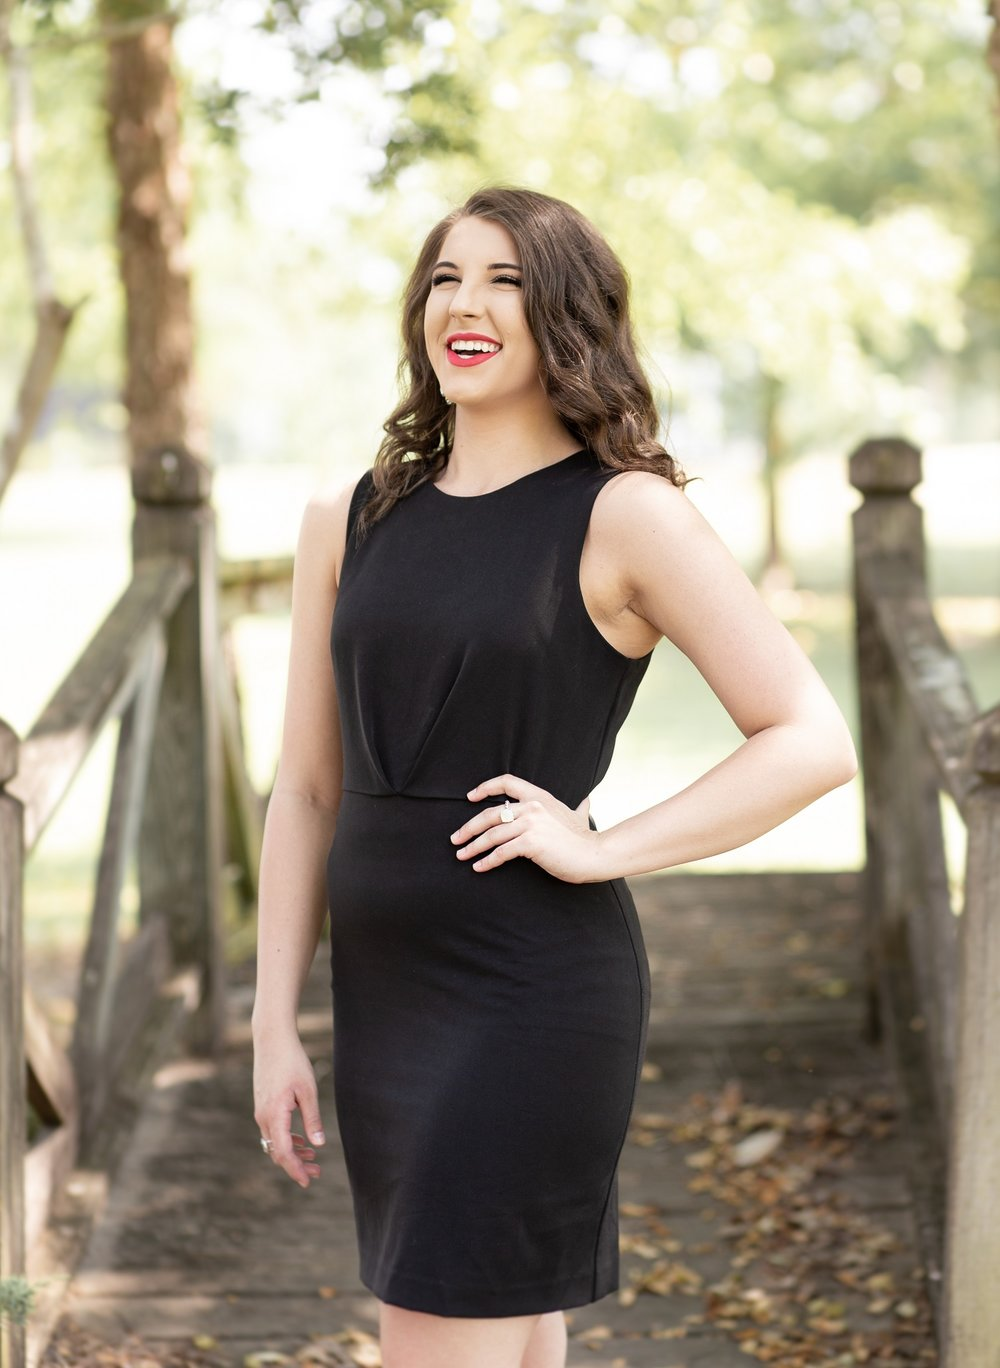 Erin Perry Cap & Gown Session-15.jpg